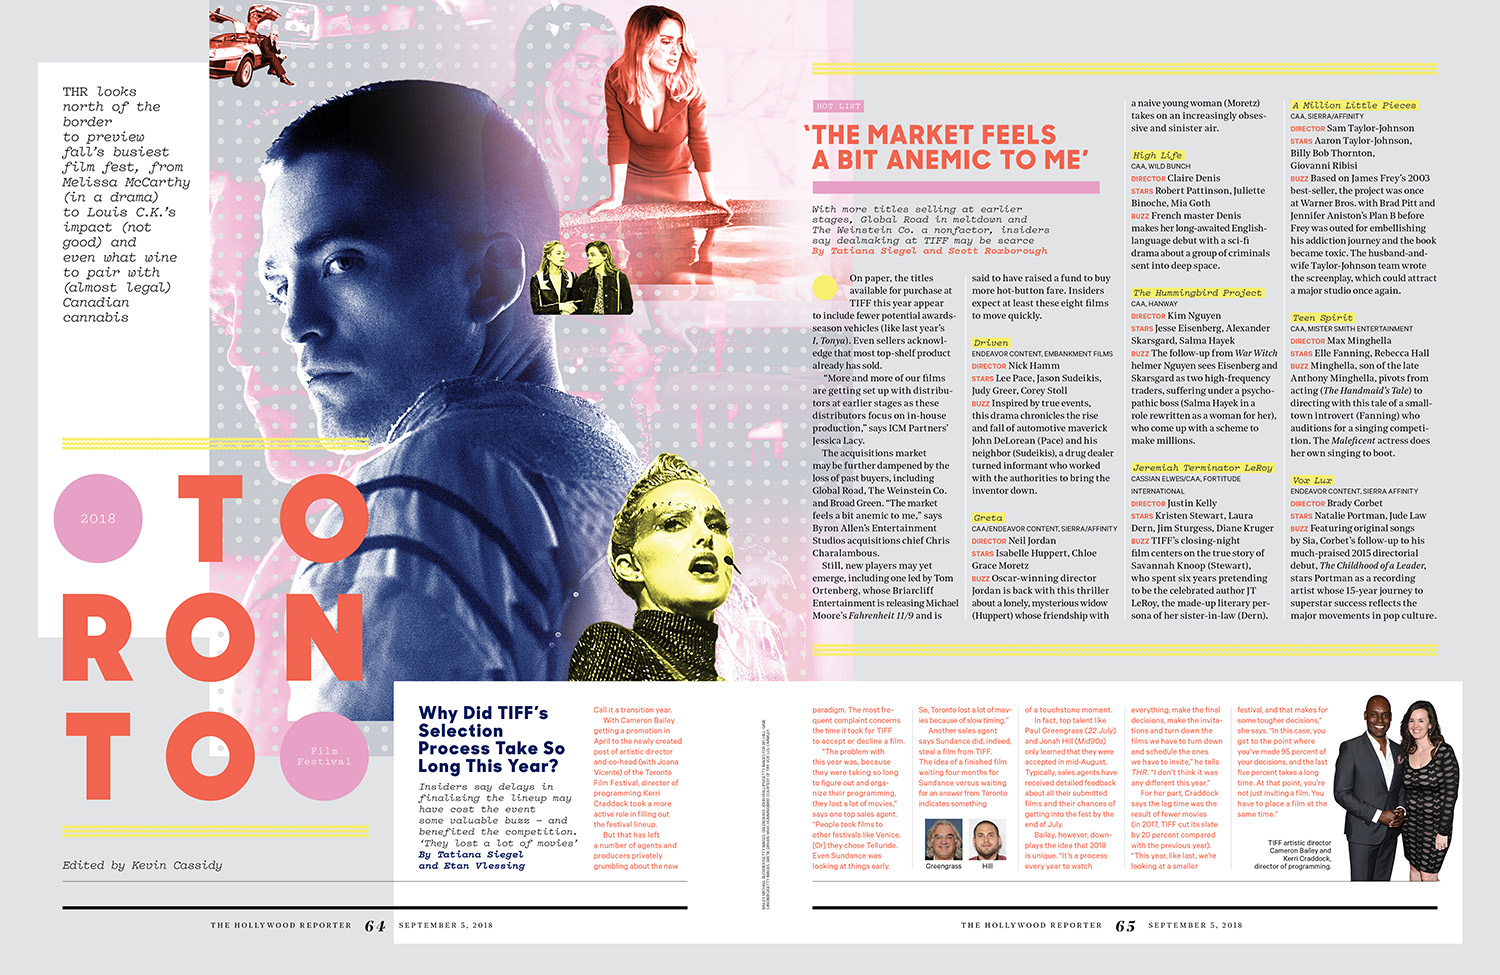 2018 Toronto Film Festival Preview / The Hollywood Reporter / 9.5.18 / kelsey stefanson / art direction + graphic design / yeskelsey.com